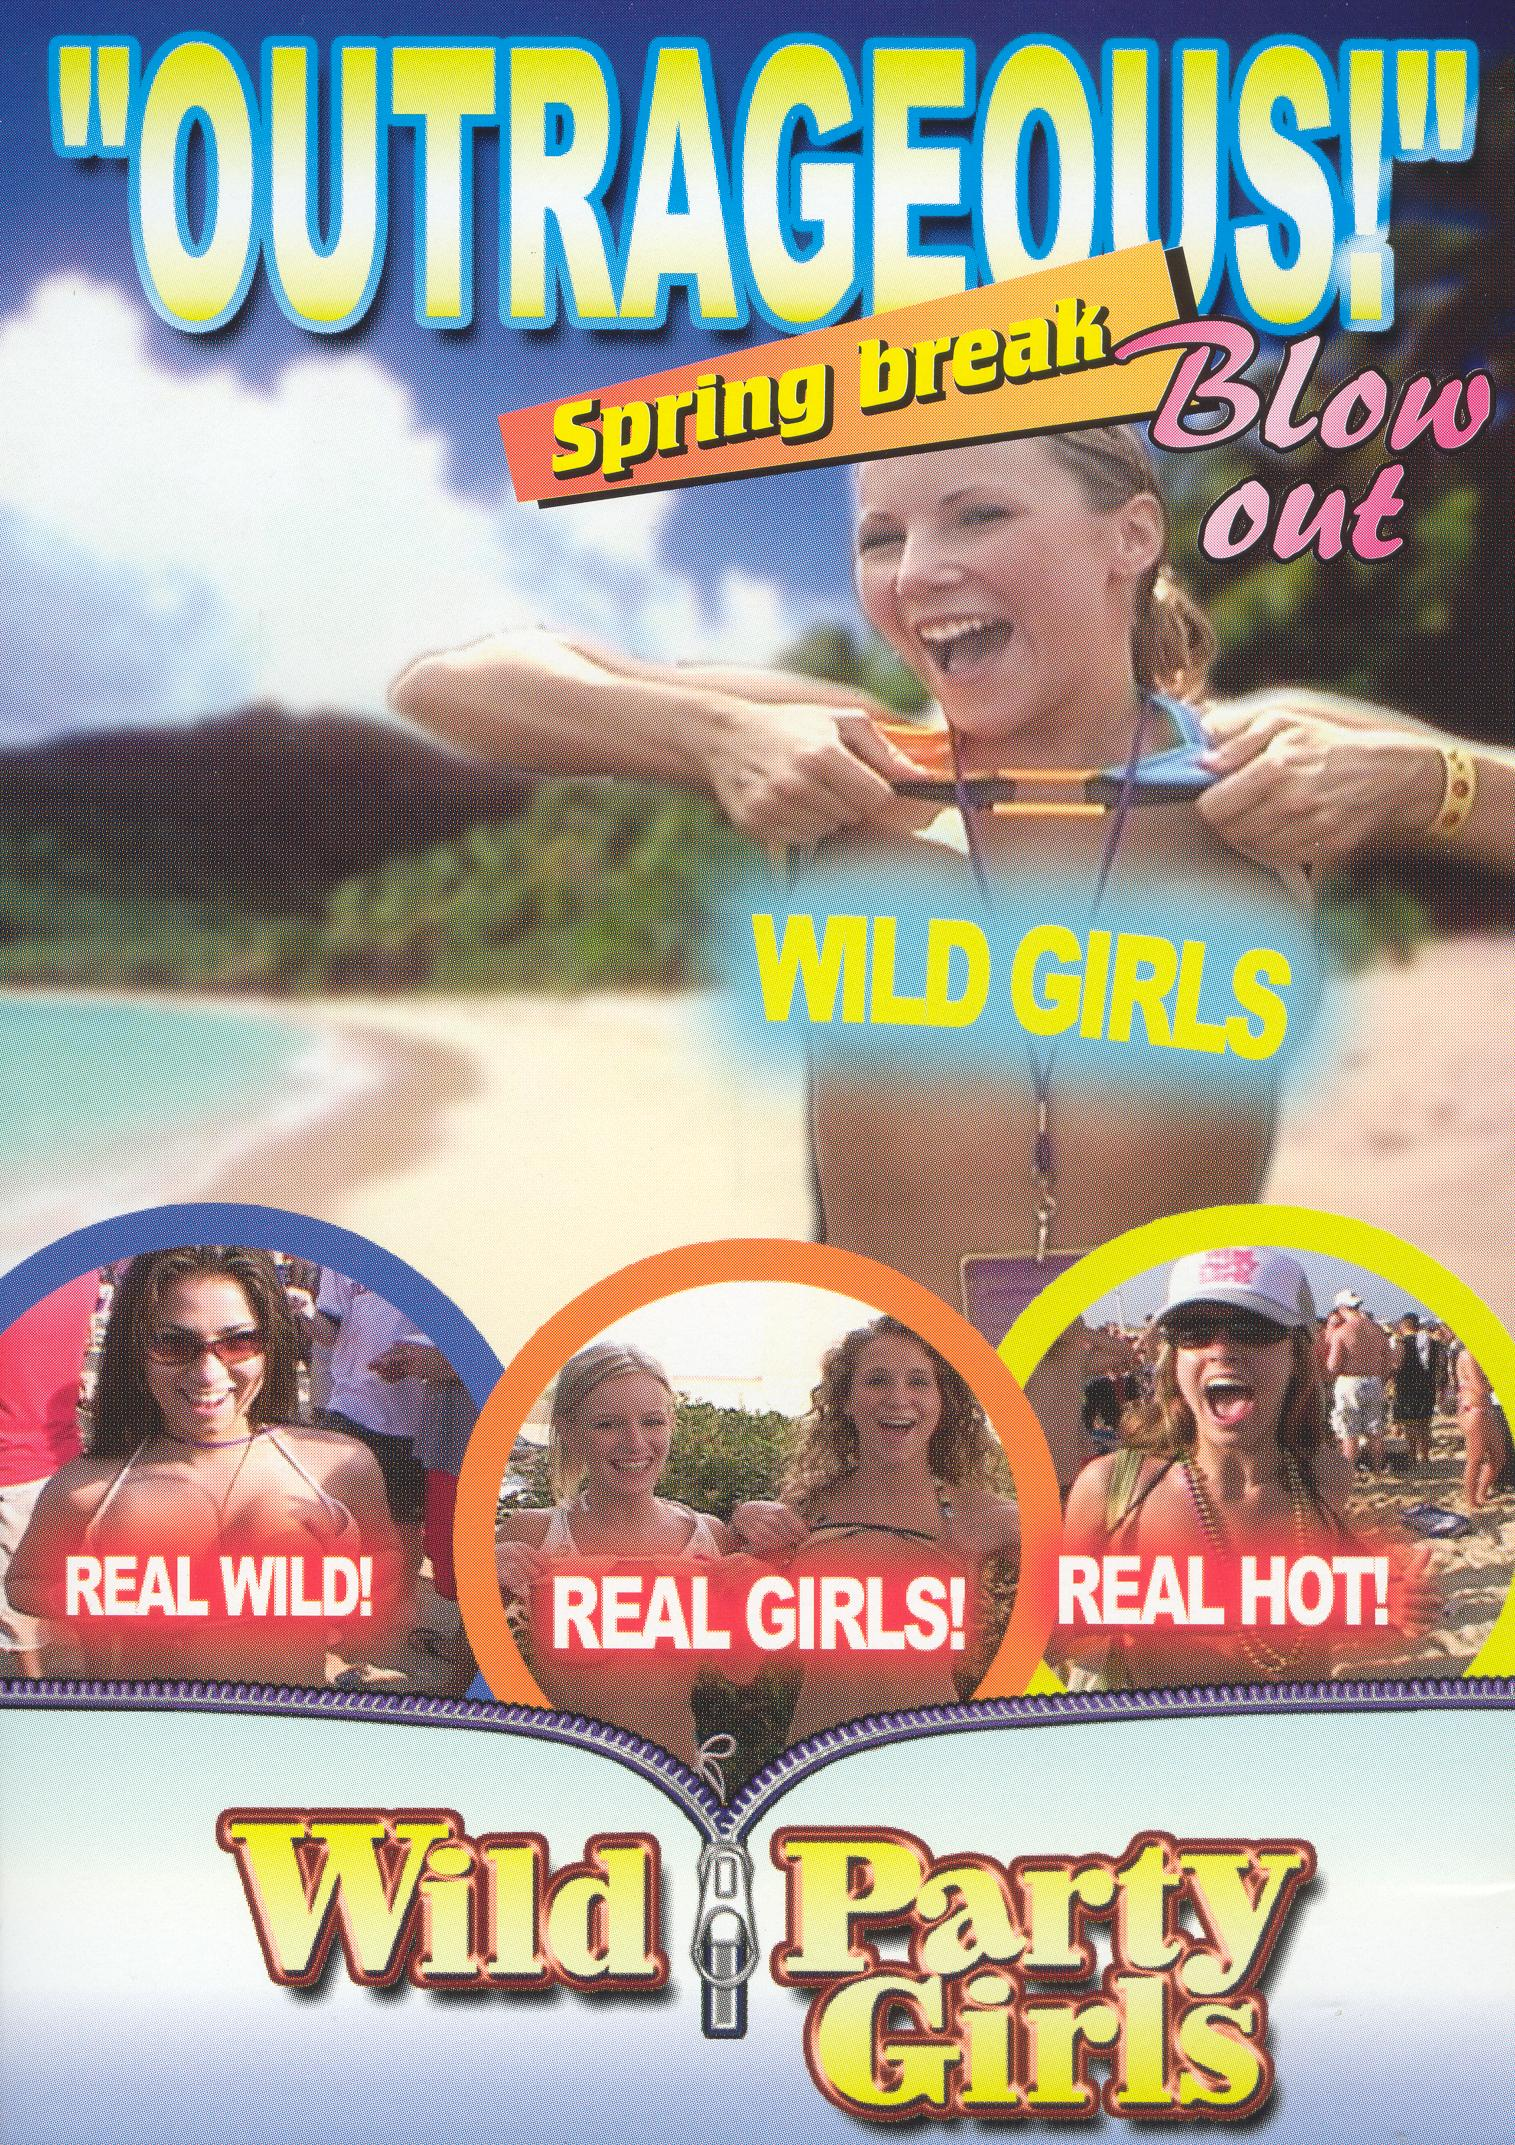 Wild Party Girls: Blow Out